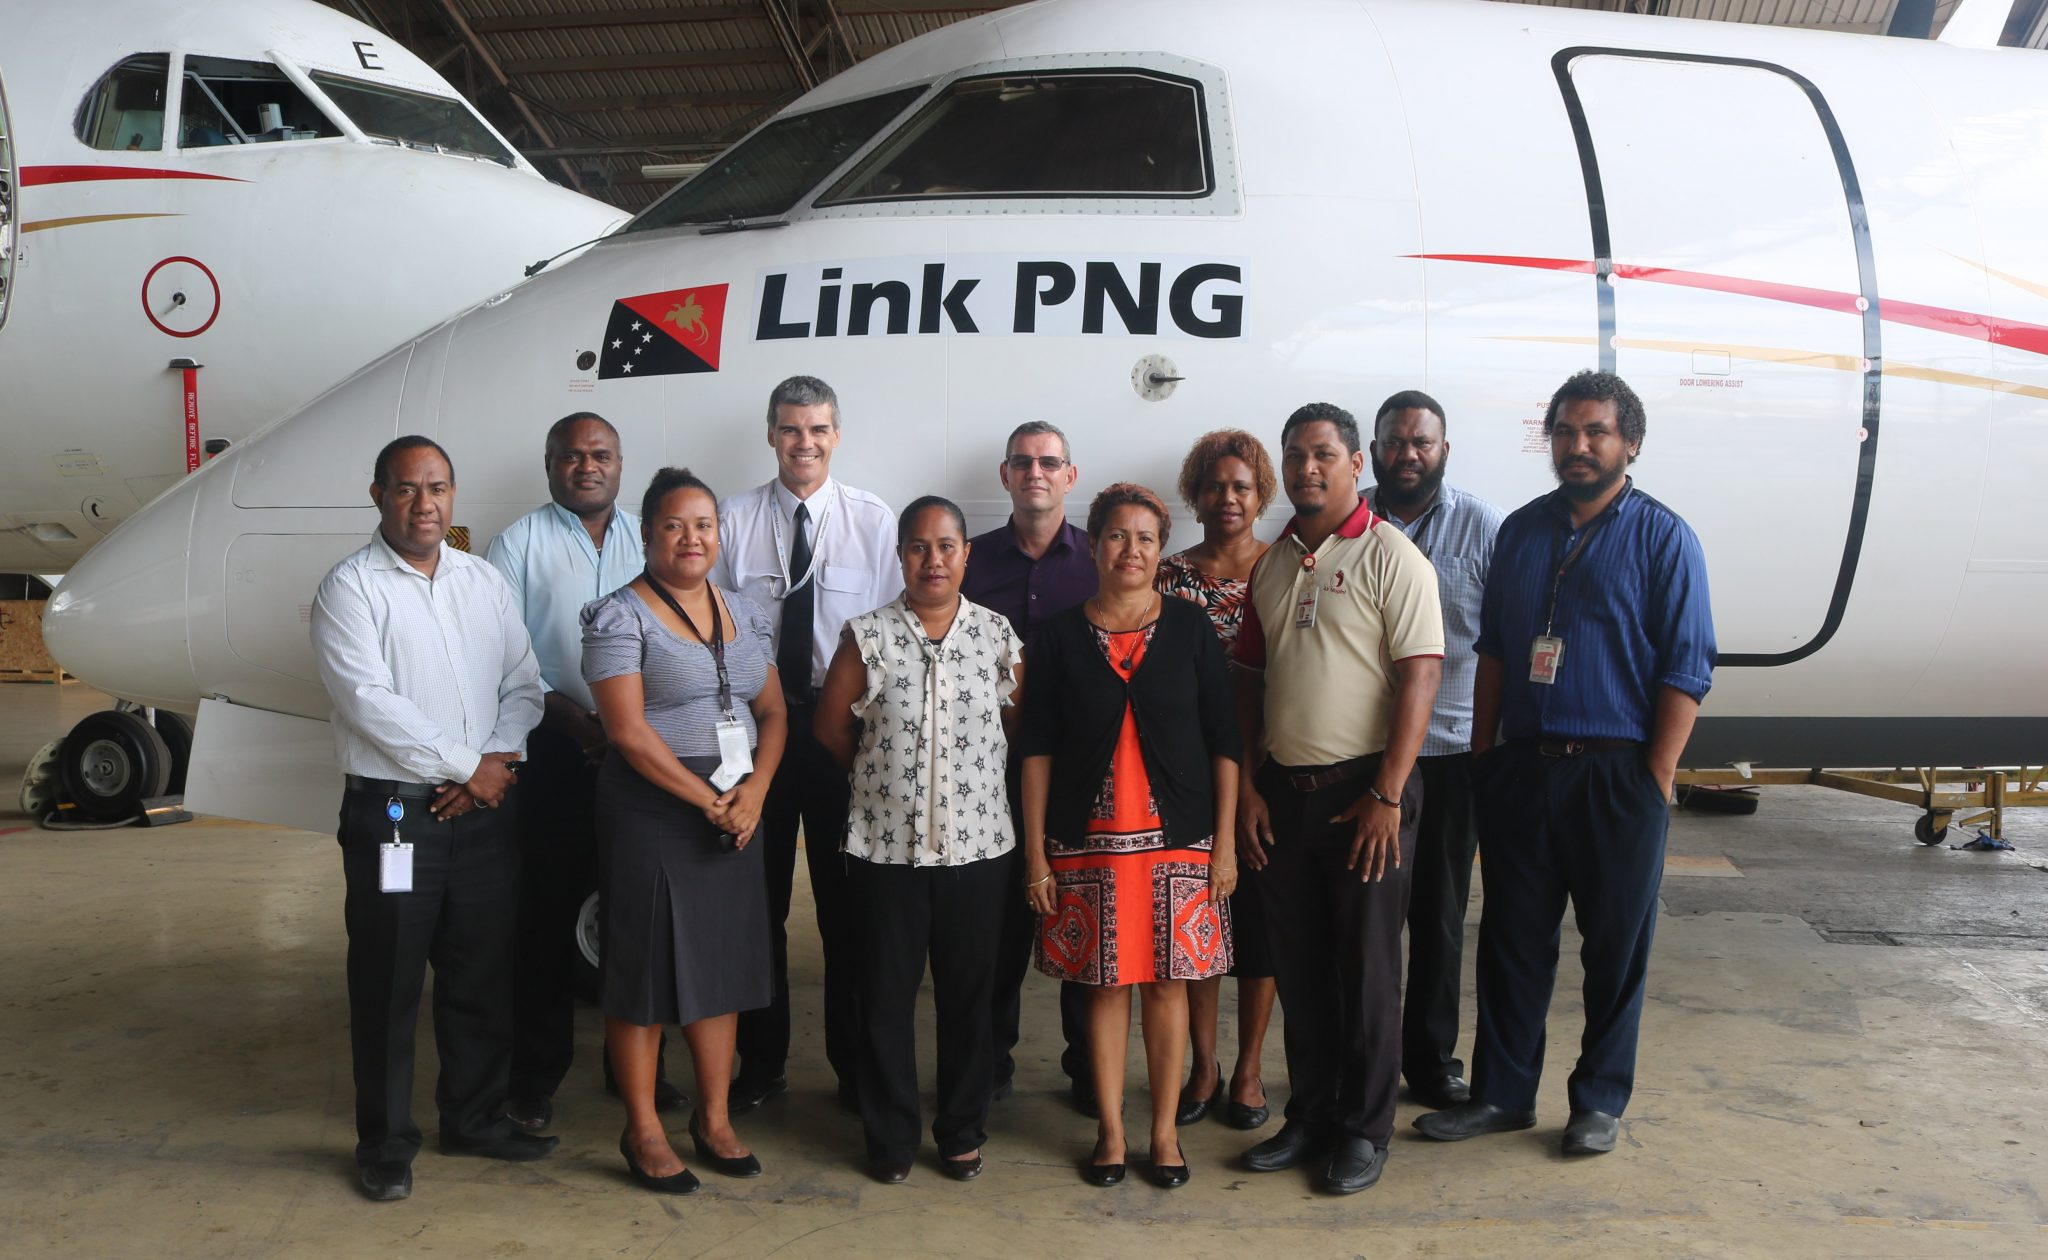 Link PNG Acquires and additional Dash 8